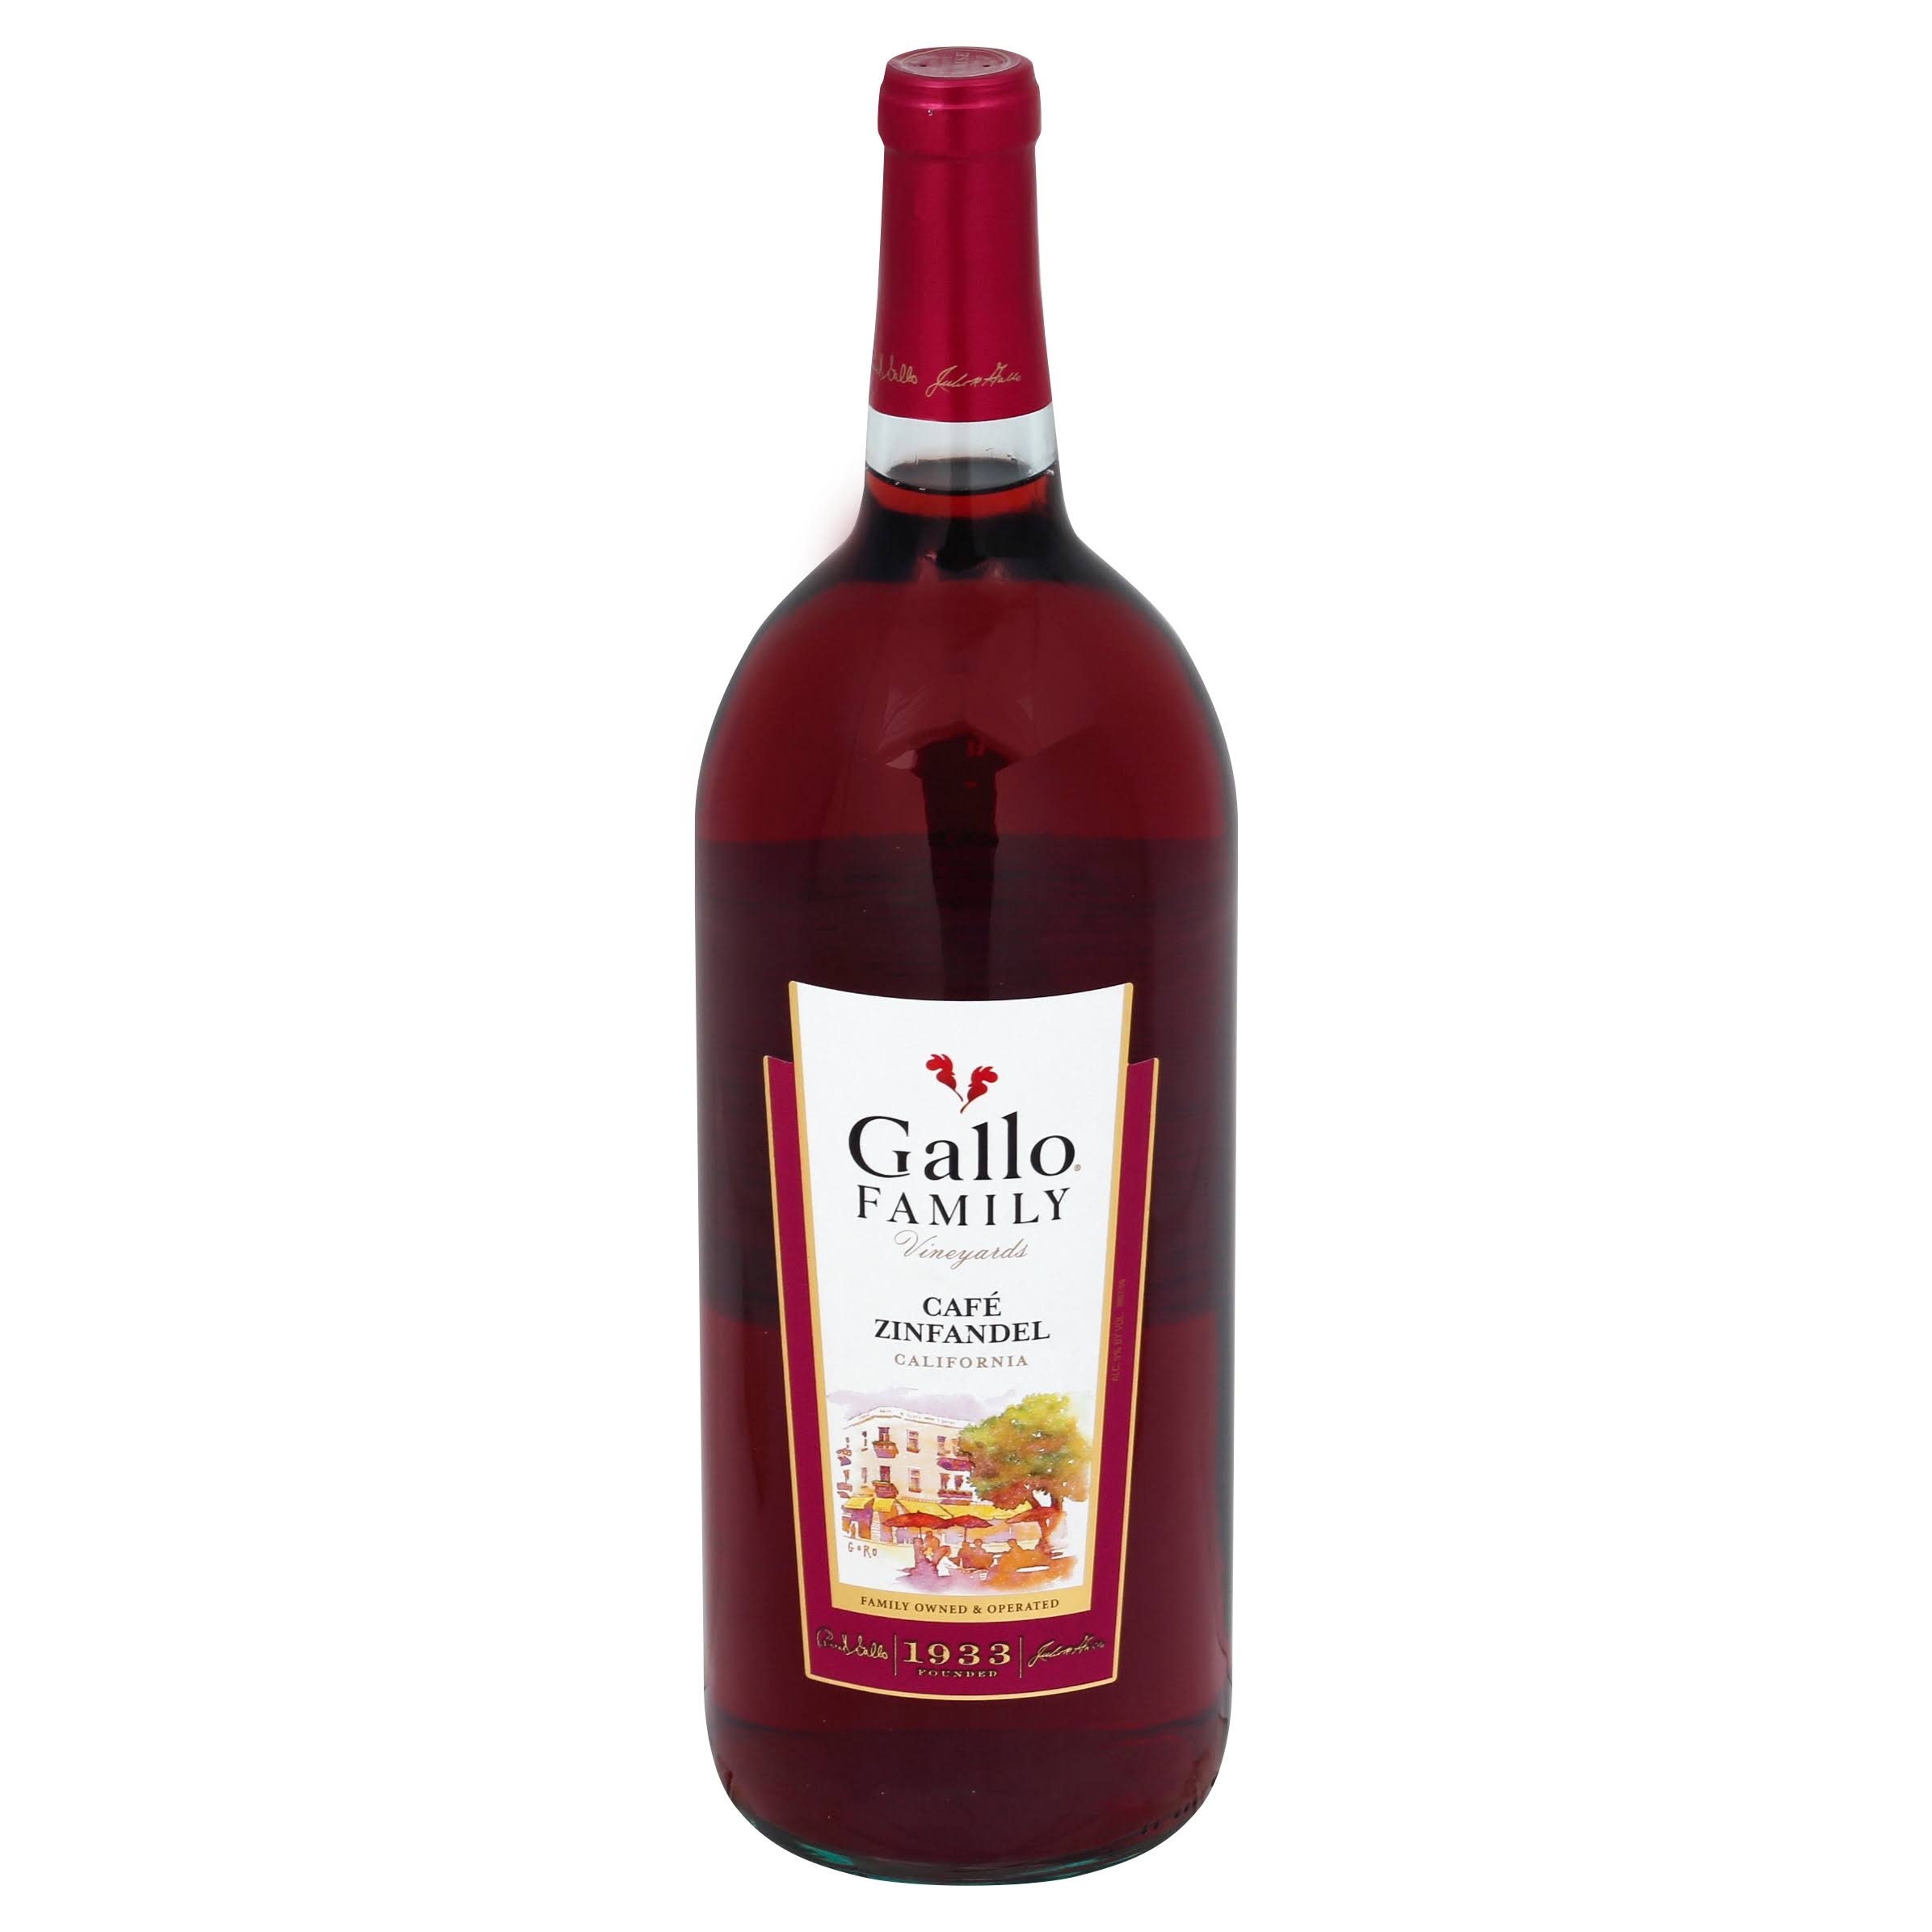 Gallo Family Vineyards Cafe Zinfandel - California, United States, 1.5L